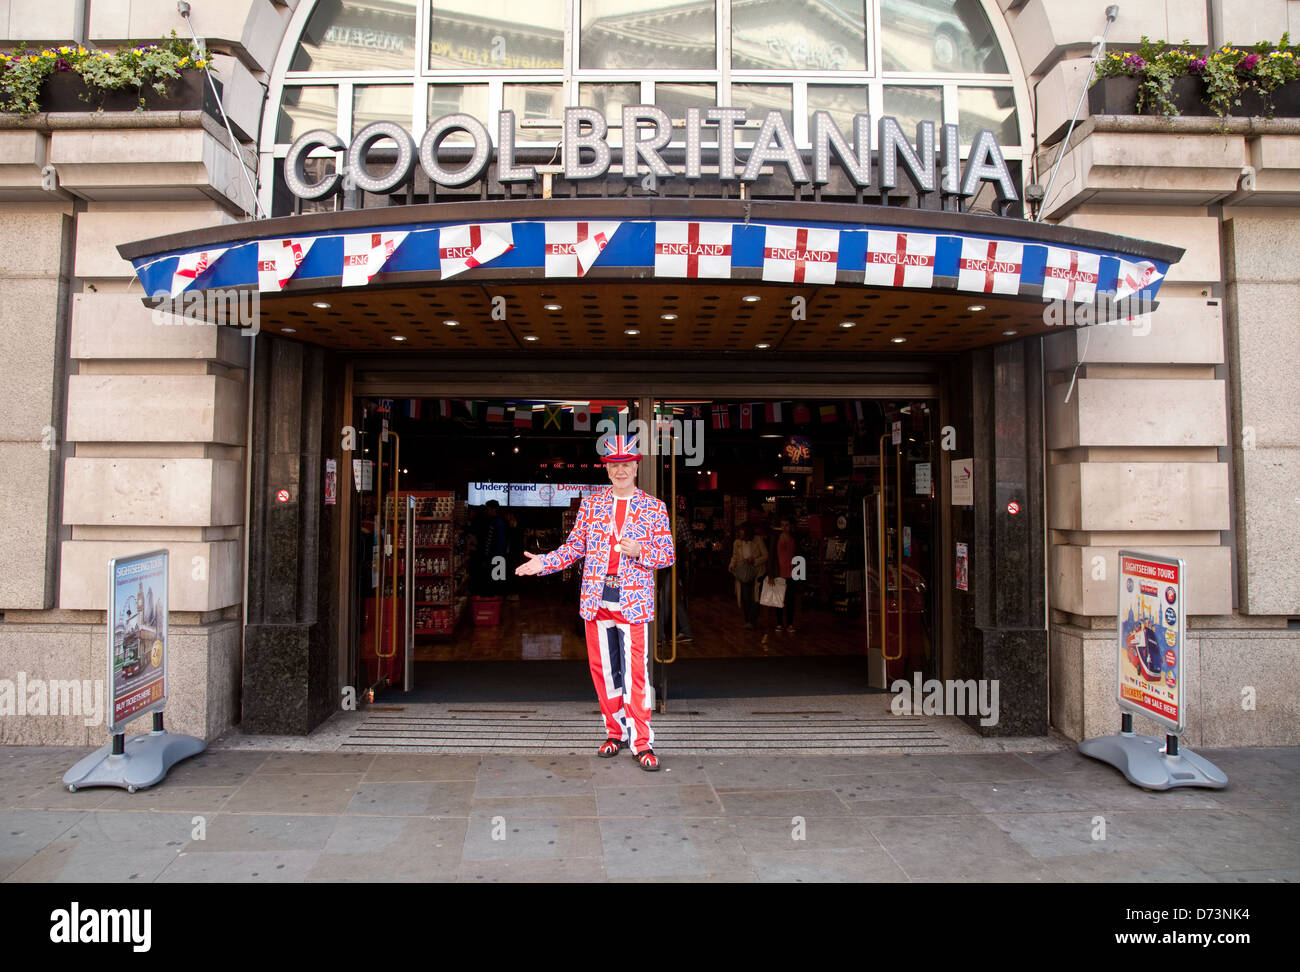 Cool Britannia store, Piccadilly Circus, london W1, for british souvenirs and gifts; UK - Stock Image